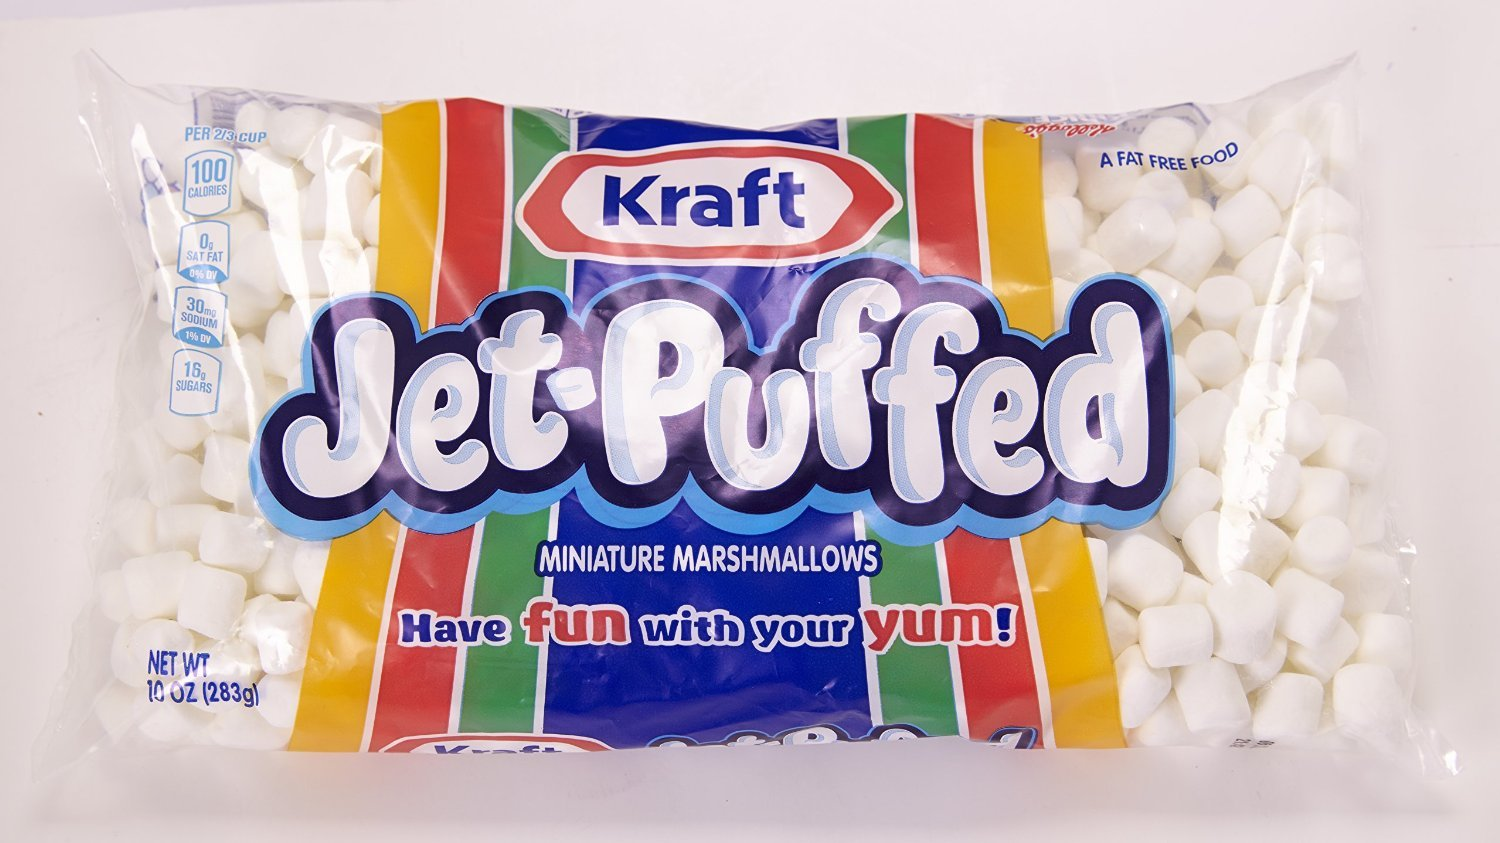 Jet-Puffed Miniature Marshmallows 10oz Bags - 6 Pack